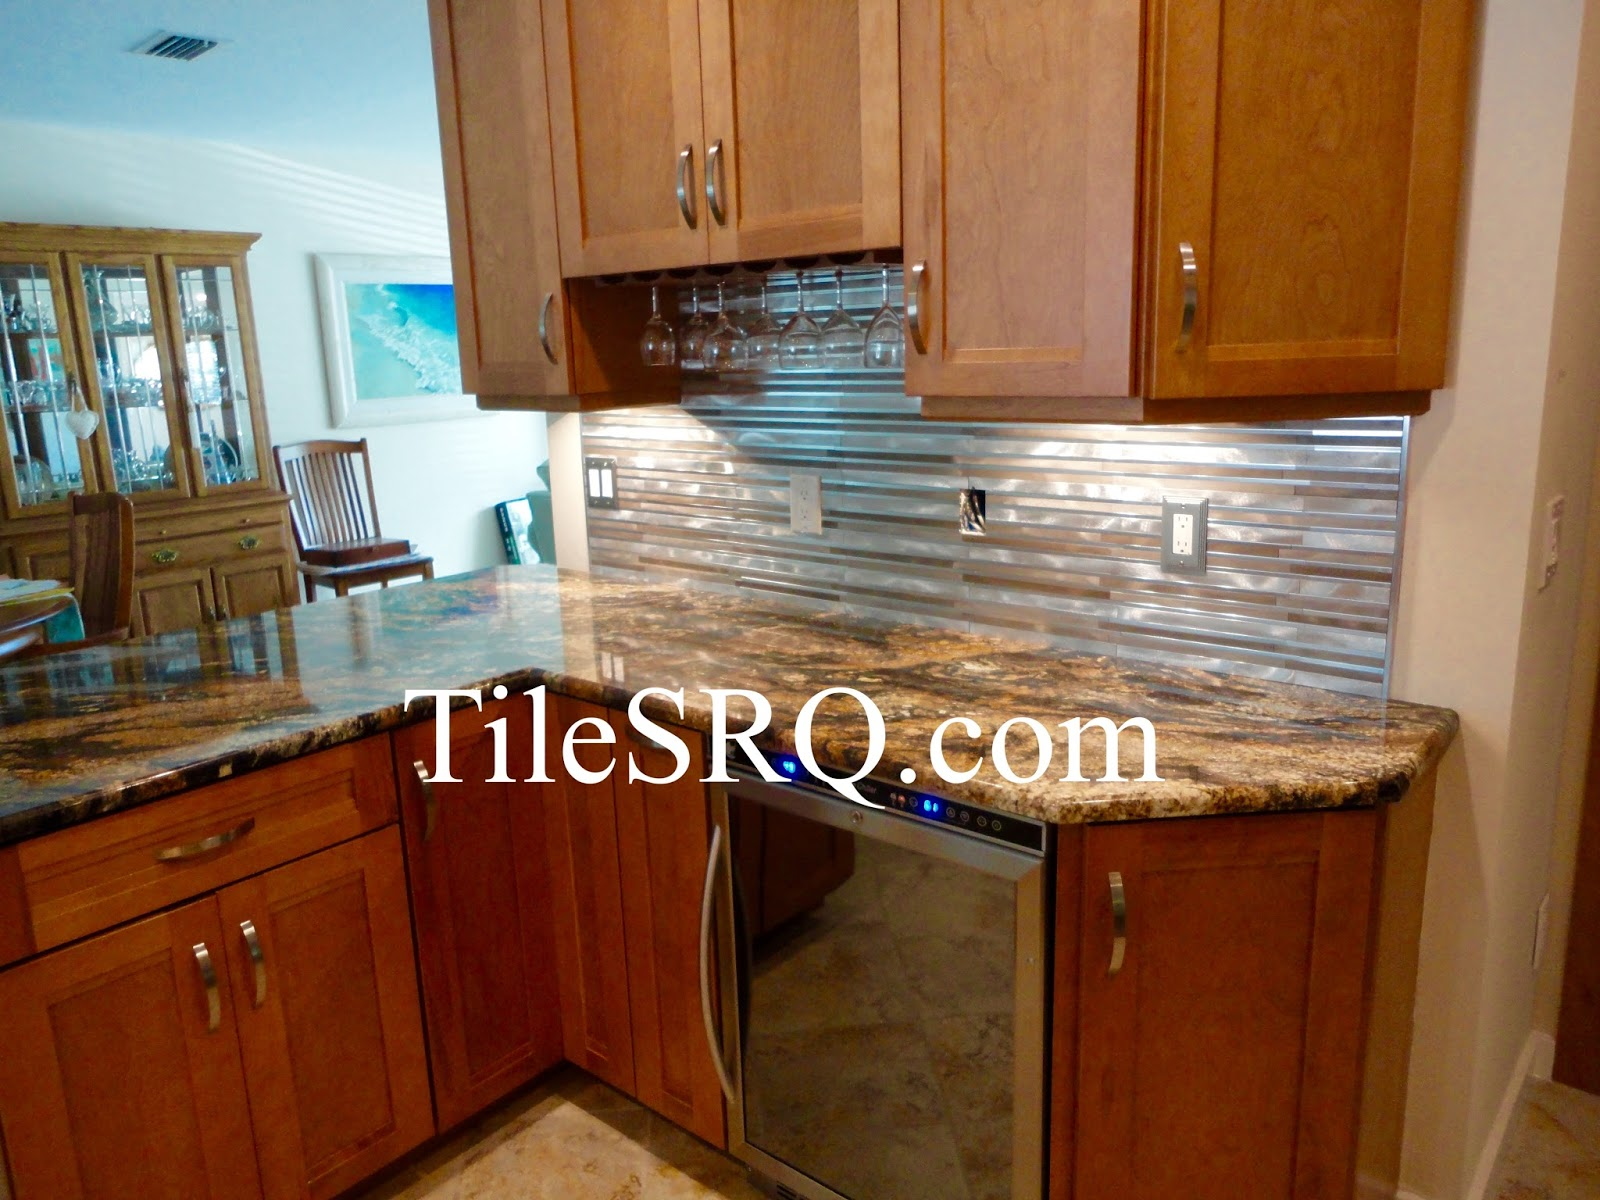 Tile sarasota this is a anodized aluminum tile backsplash that posted by tile sarasota at 611 pm dailygadgetfo Gallery